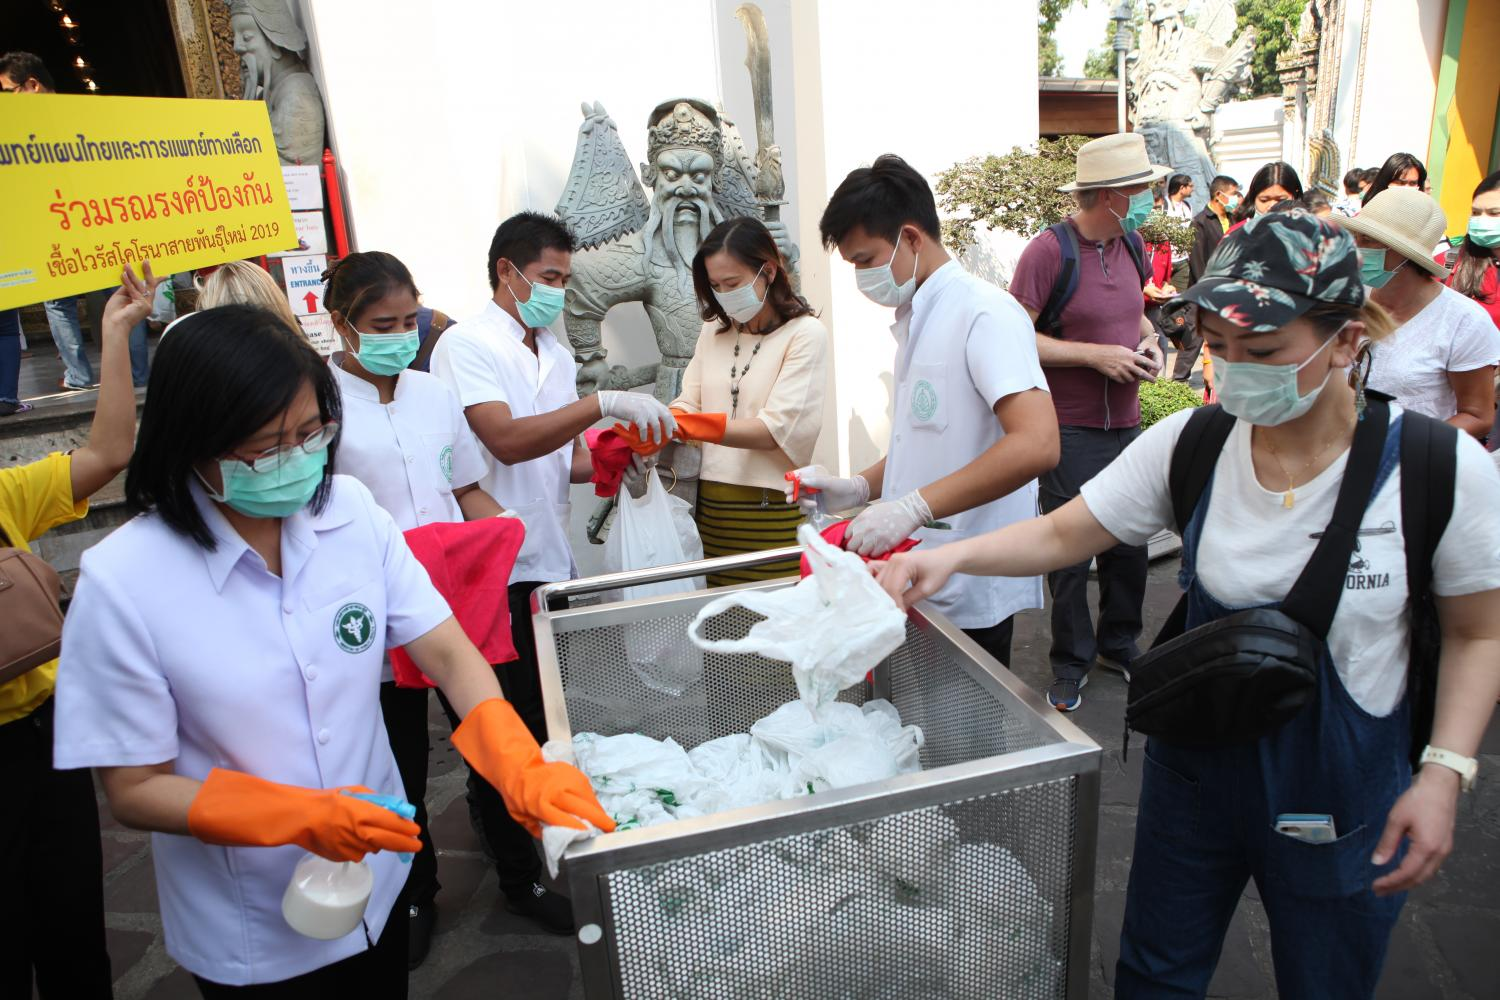 Staff at Wat Pho disinfect bags used by visitors to carry shoes in the Reclining Buddha Hall, part of measures to fight Covid-19.(Photo by Arnun Chonmahatrakool)